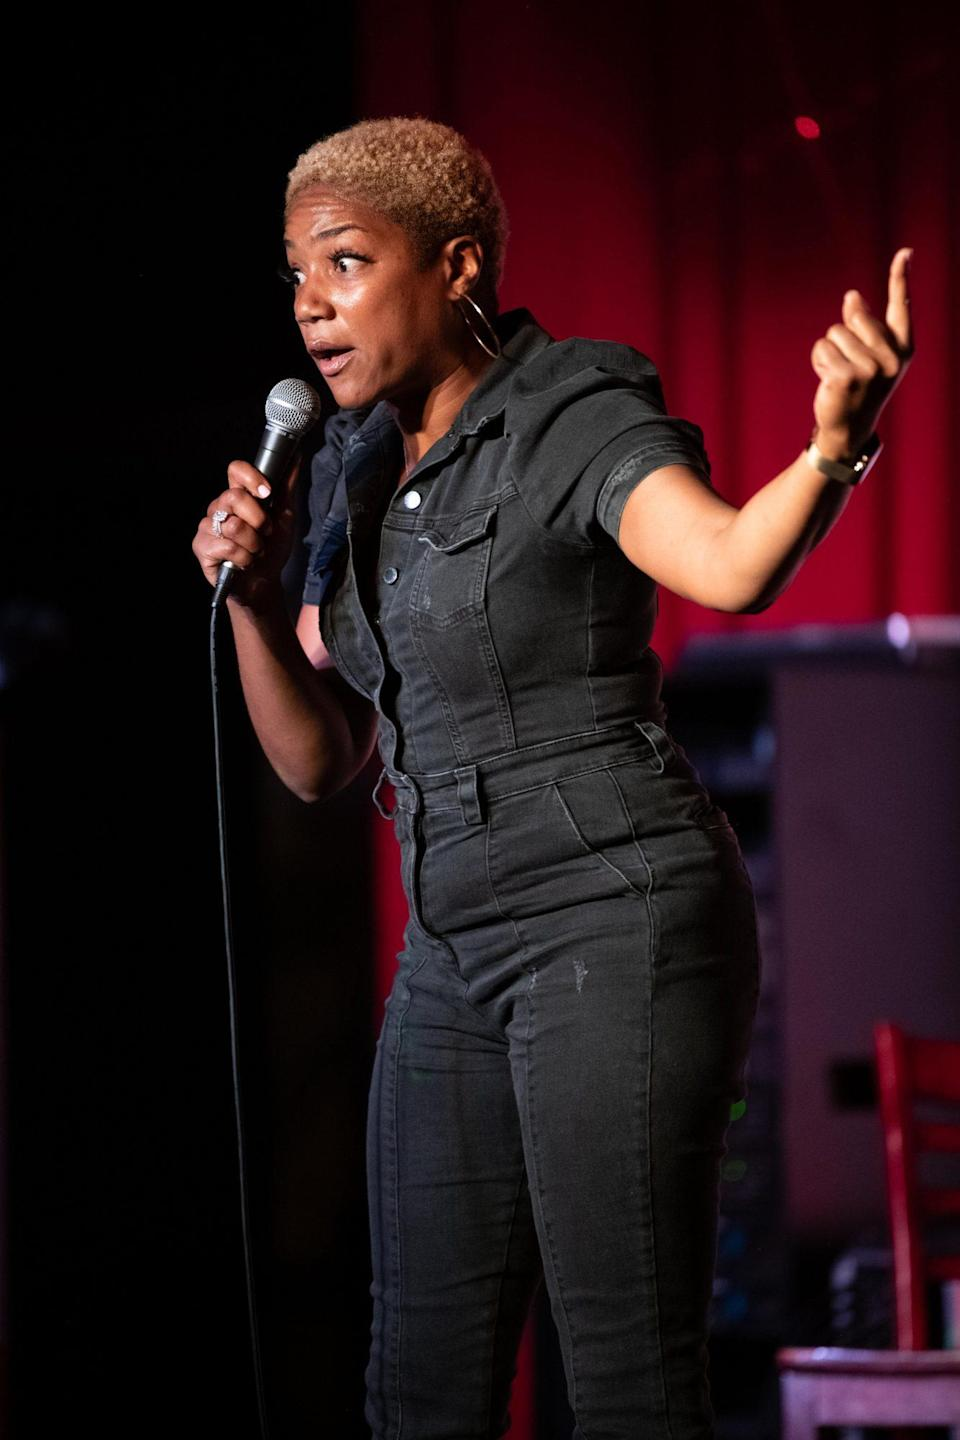 <p>Tiffany Haddish performs at The Savoy Entertainment Center in Inglewood, California on July 21.</p>